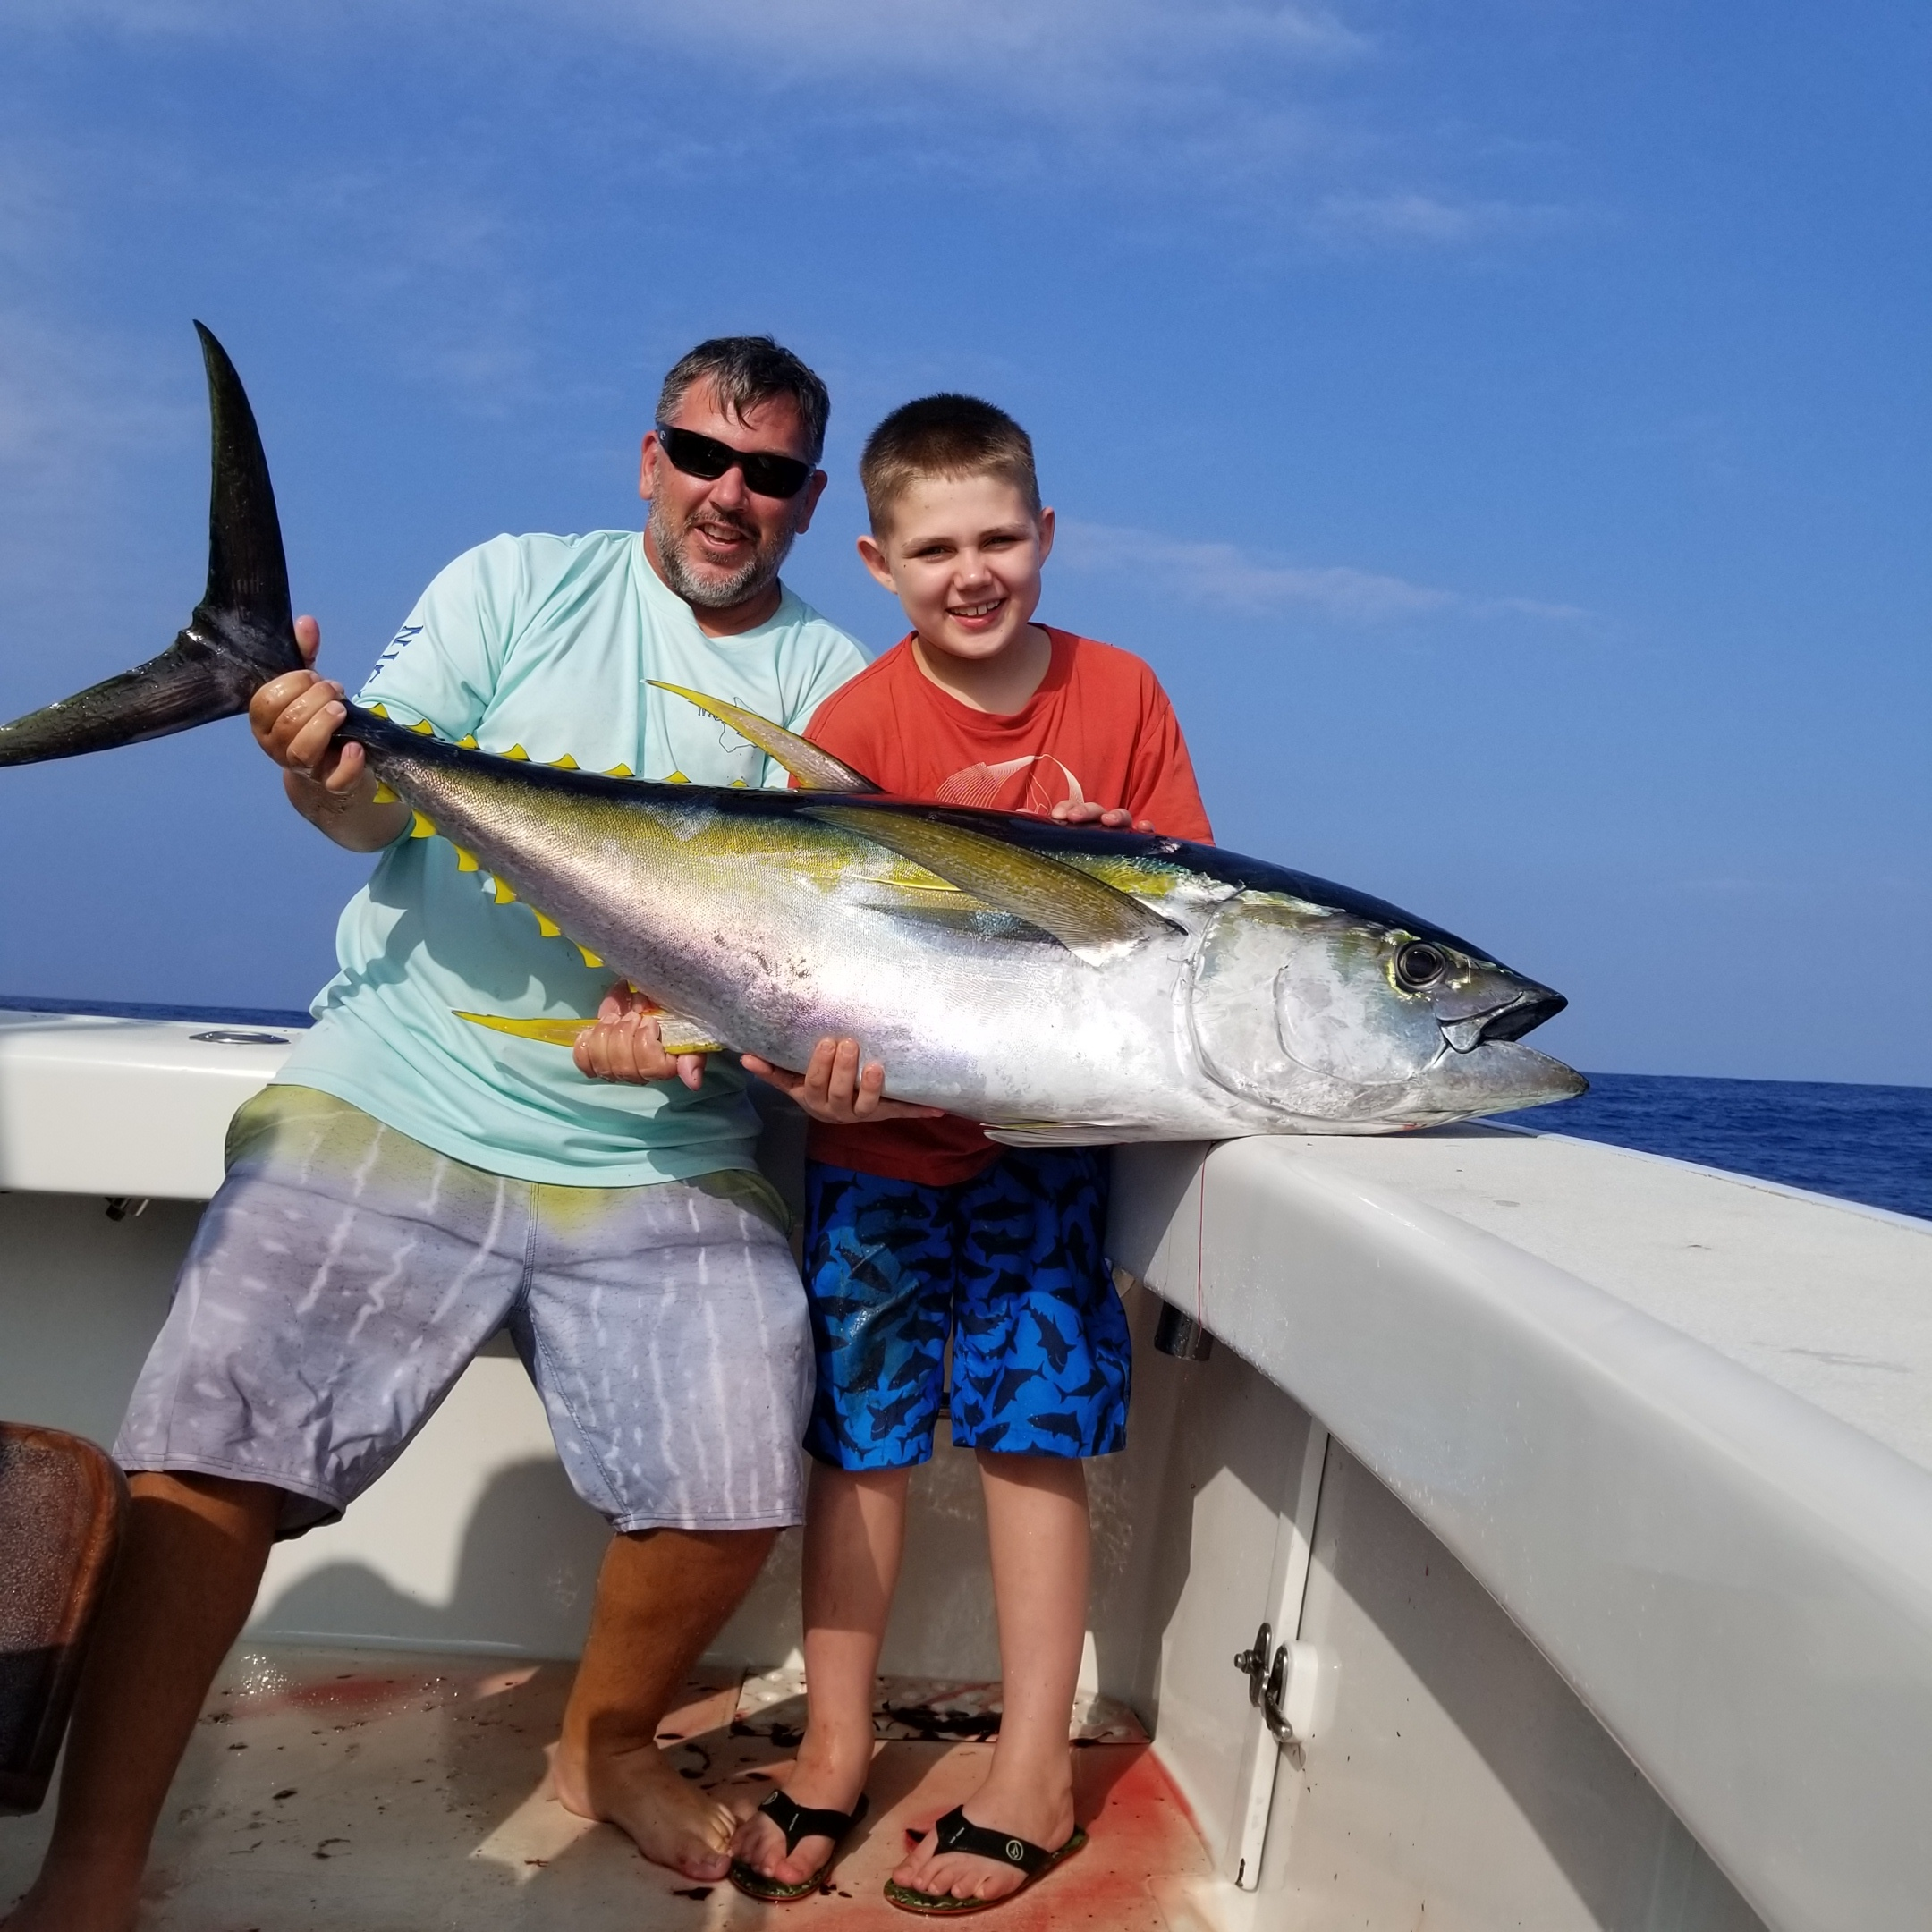 Family Trip - Perfect for families. Learn to fish!